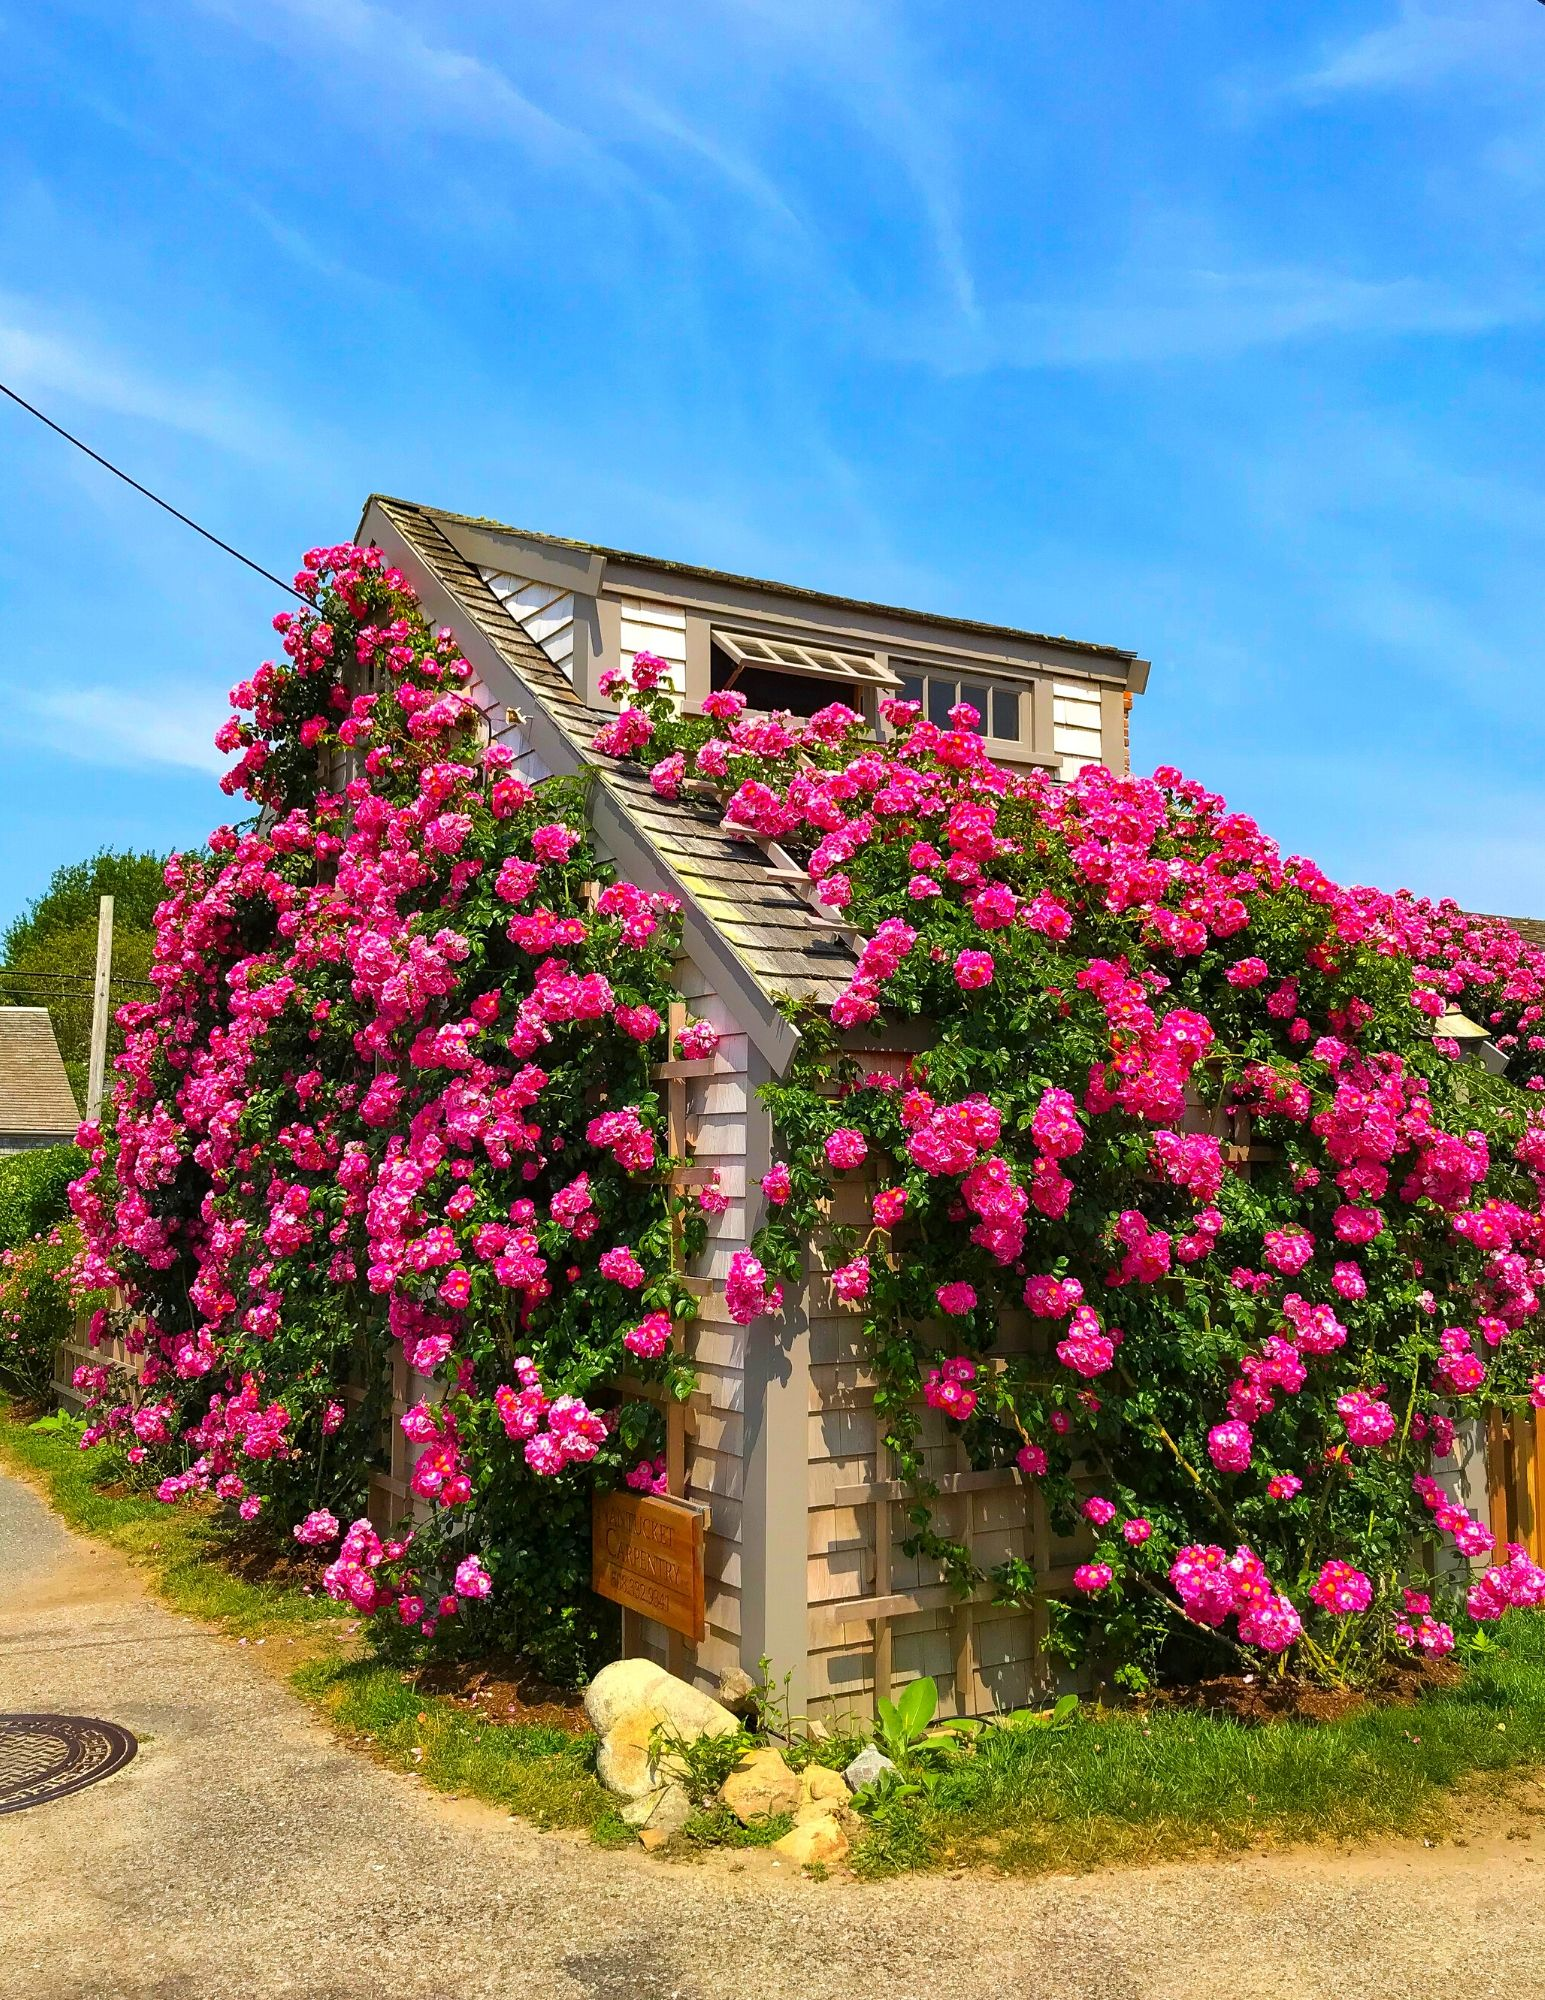 Nantucket Rose Covered Cottages in Sconset-13